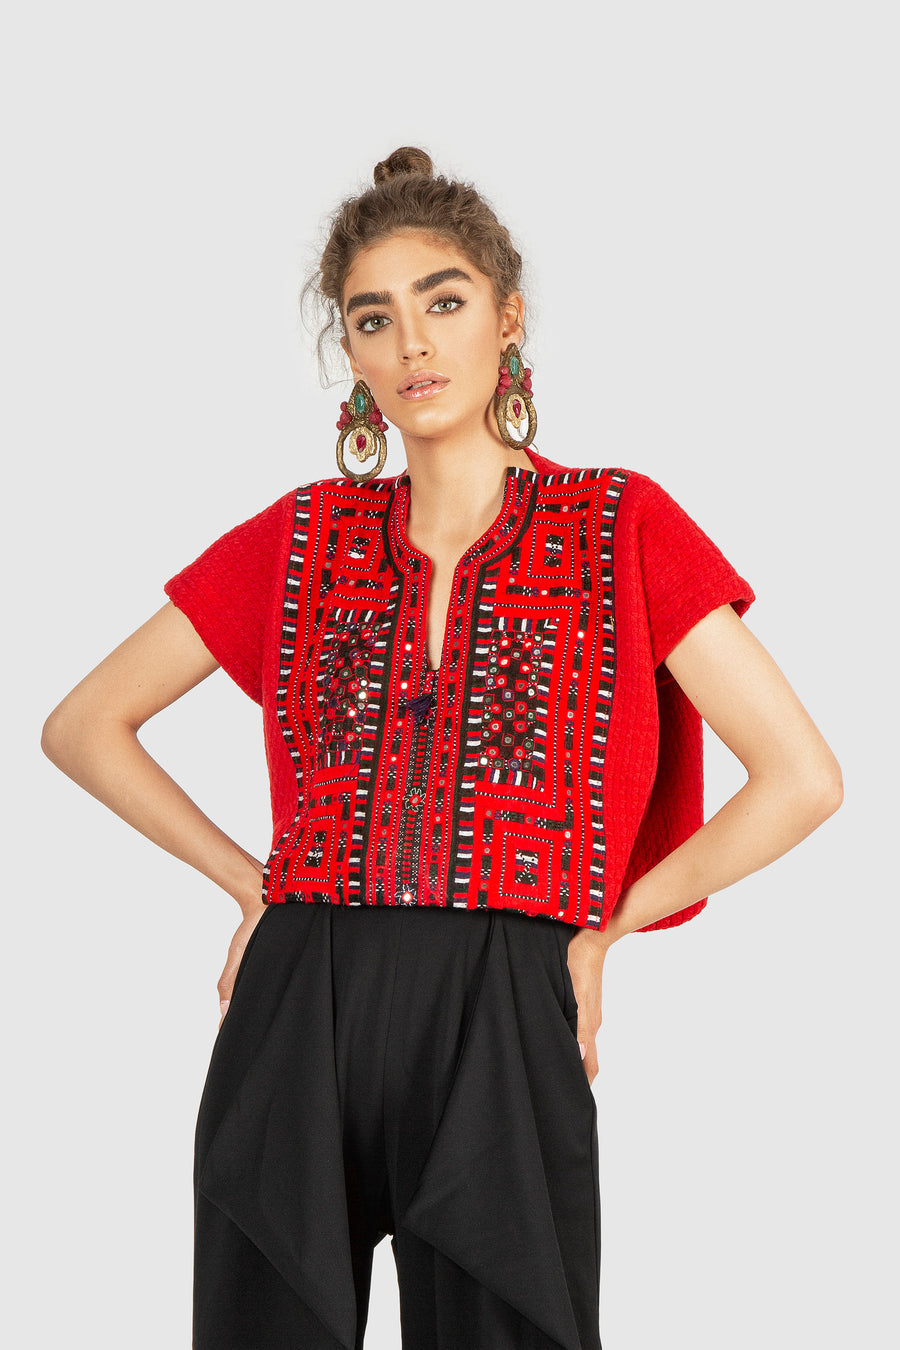 Red Top In Mirror Linear Embellishments